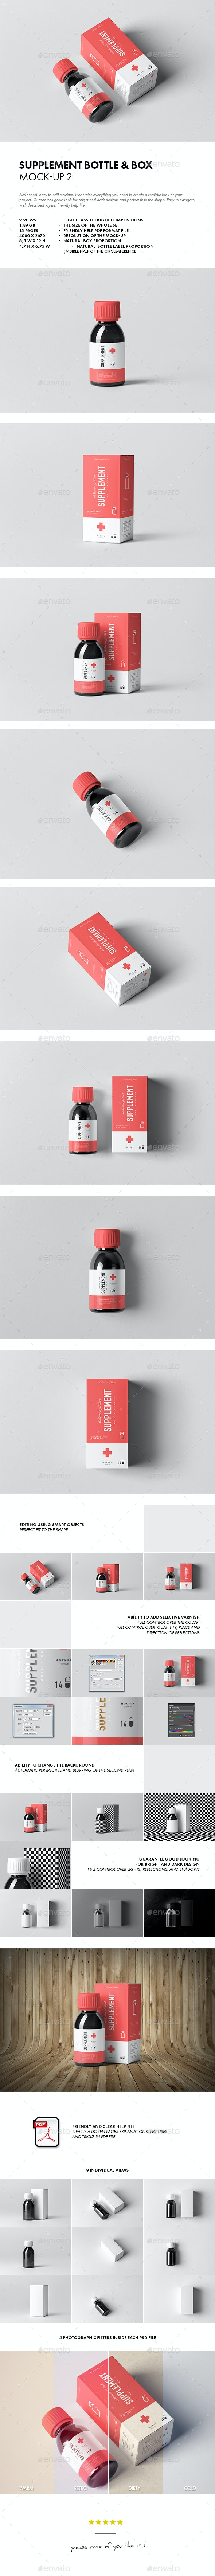 Supplement Bottle & Box Mock-up 2 - Miscellaneous Packaging